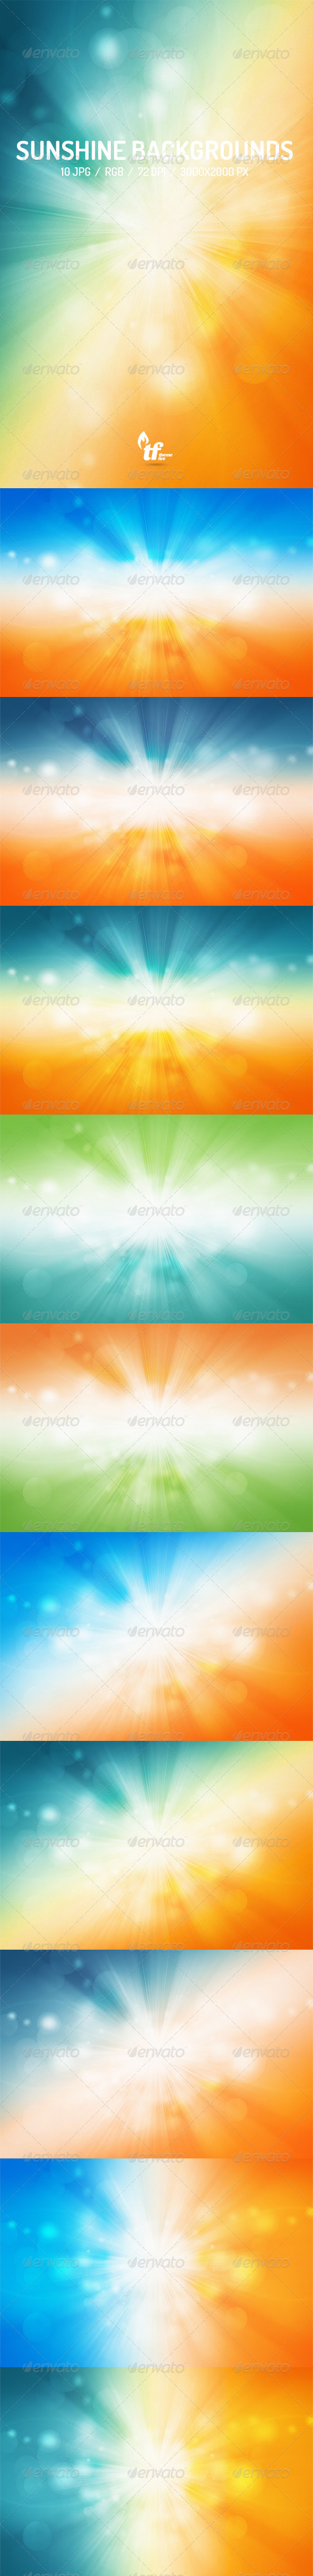 GraphicRiver Sunshine Backgrounds 7592985